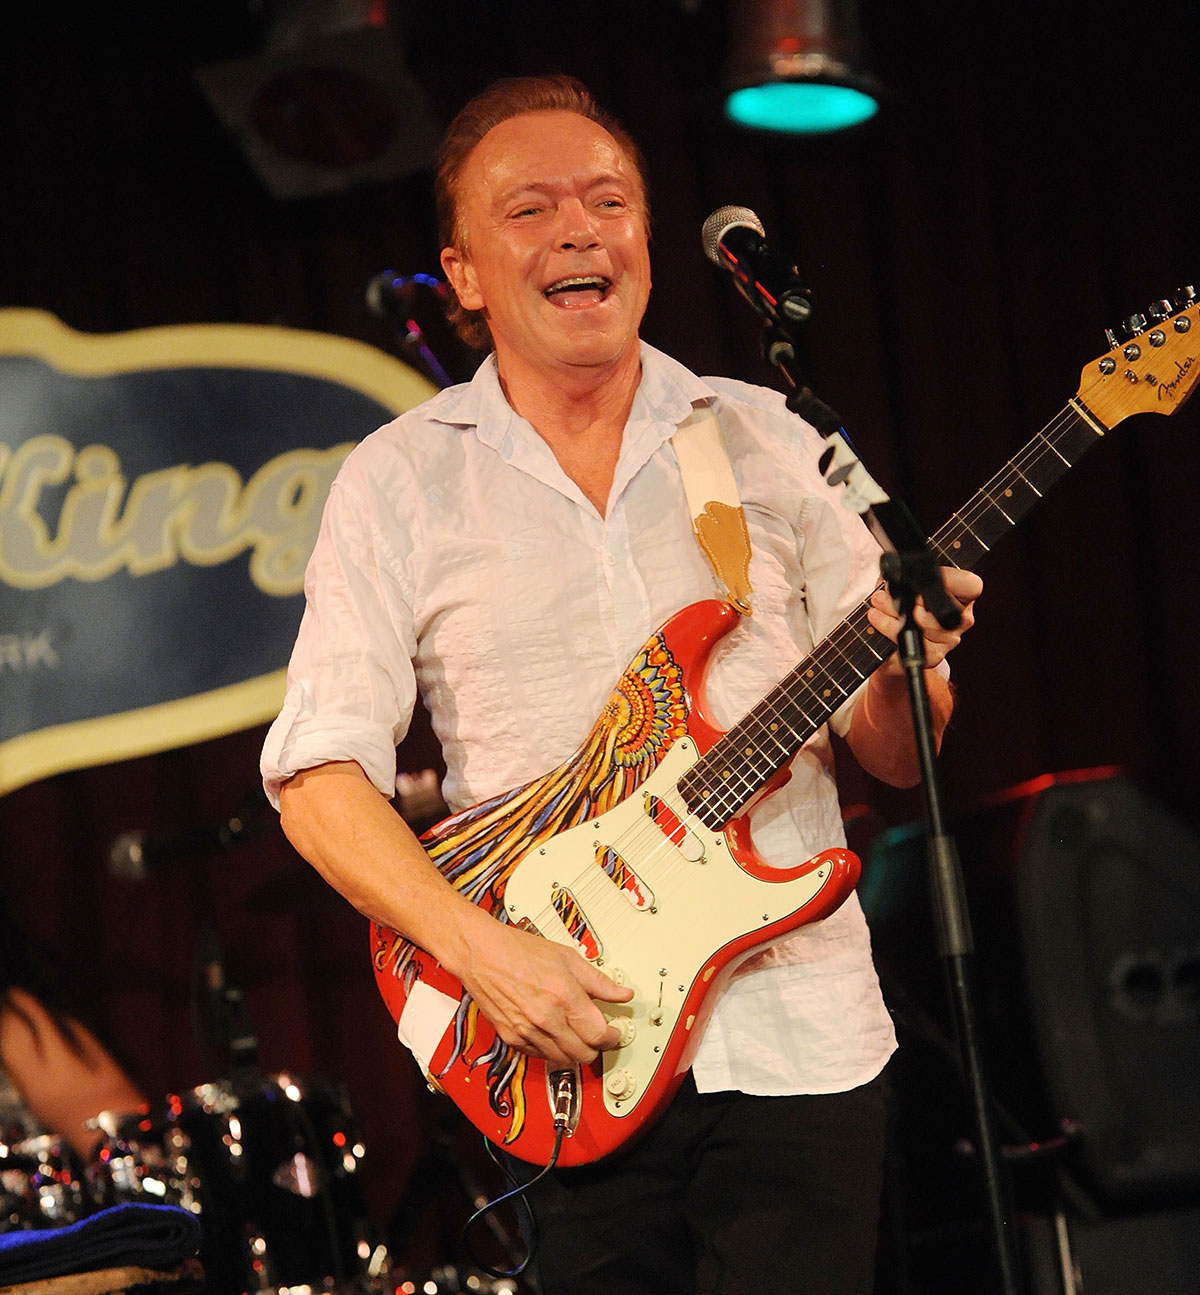 David Cassidy performs at BB King on January 10, 2015 in New York City